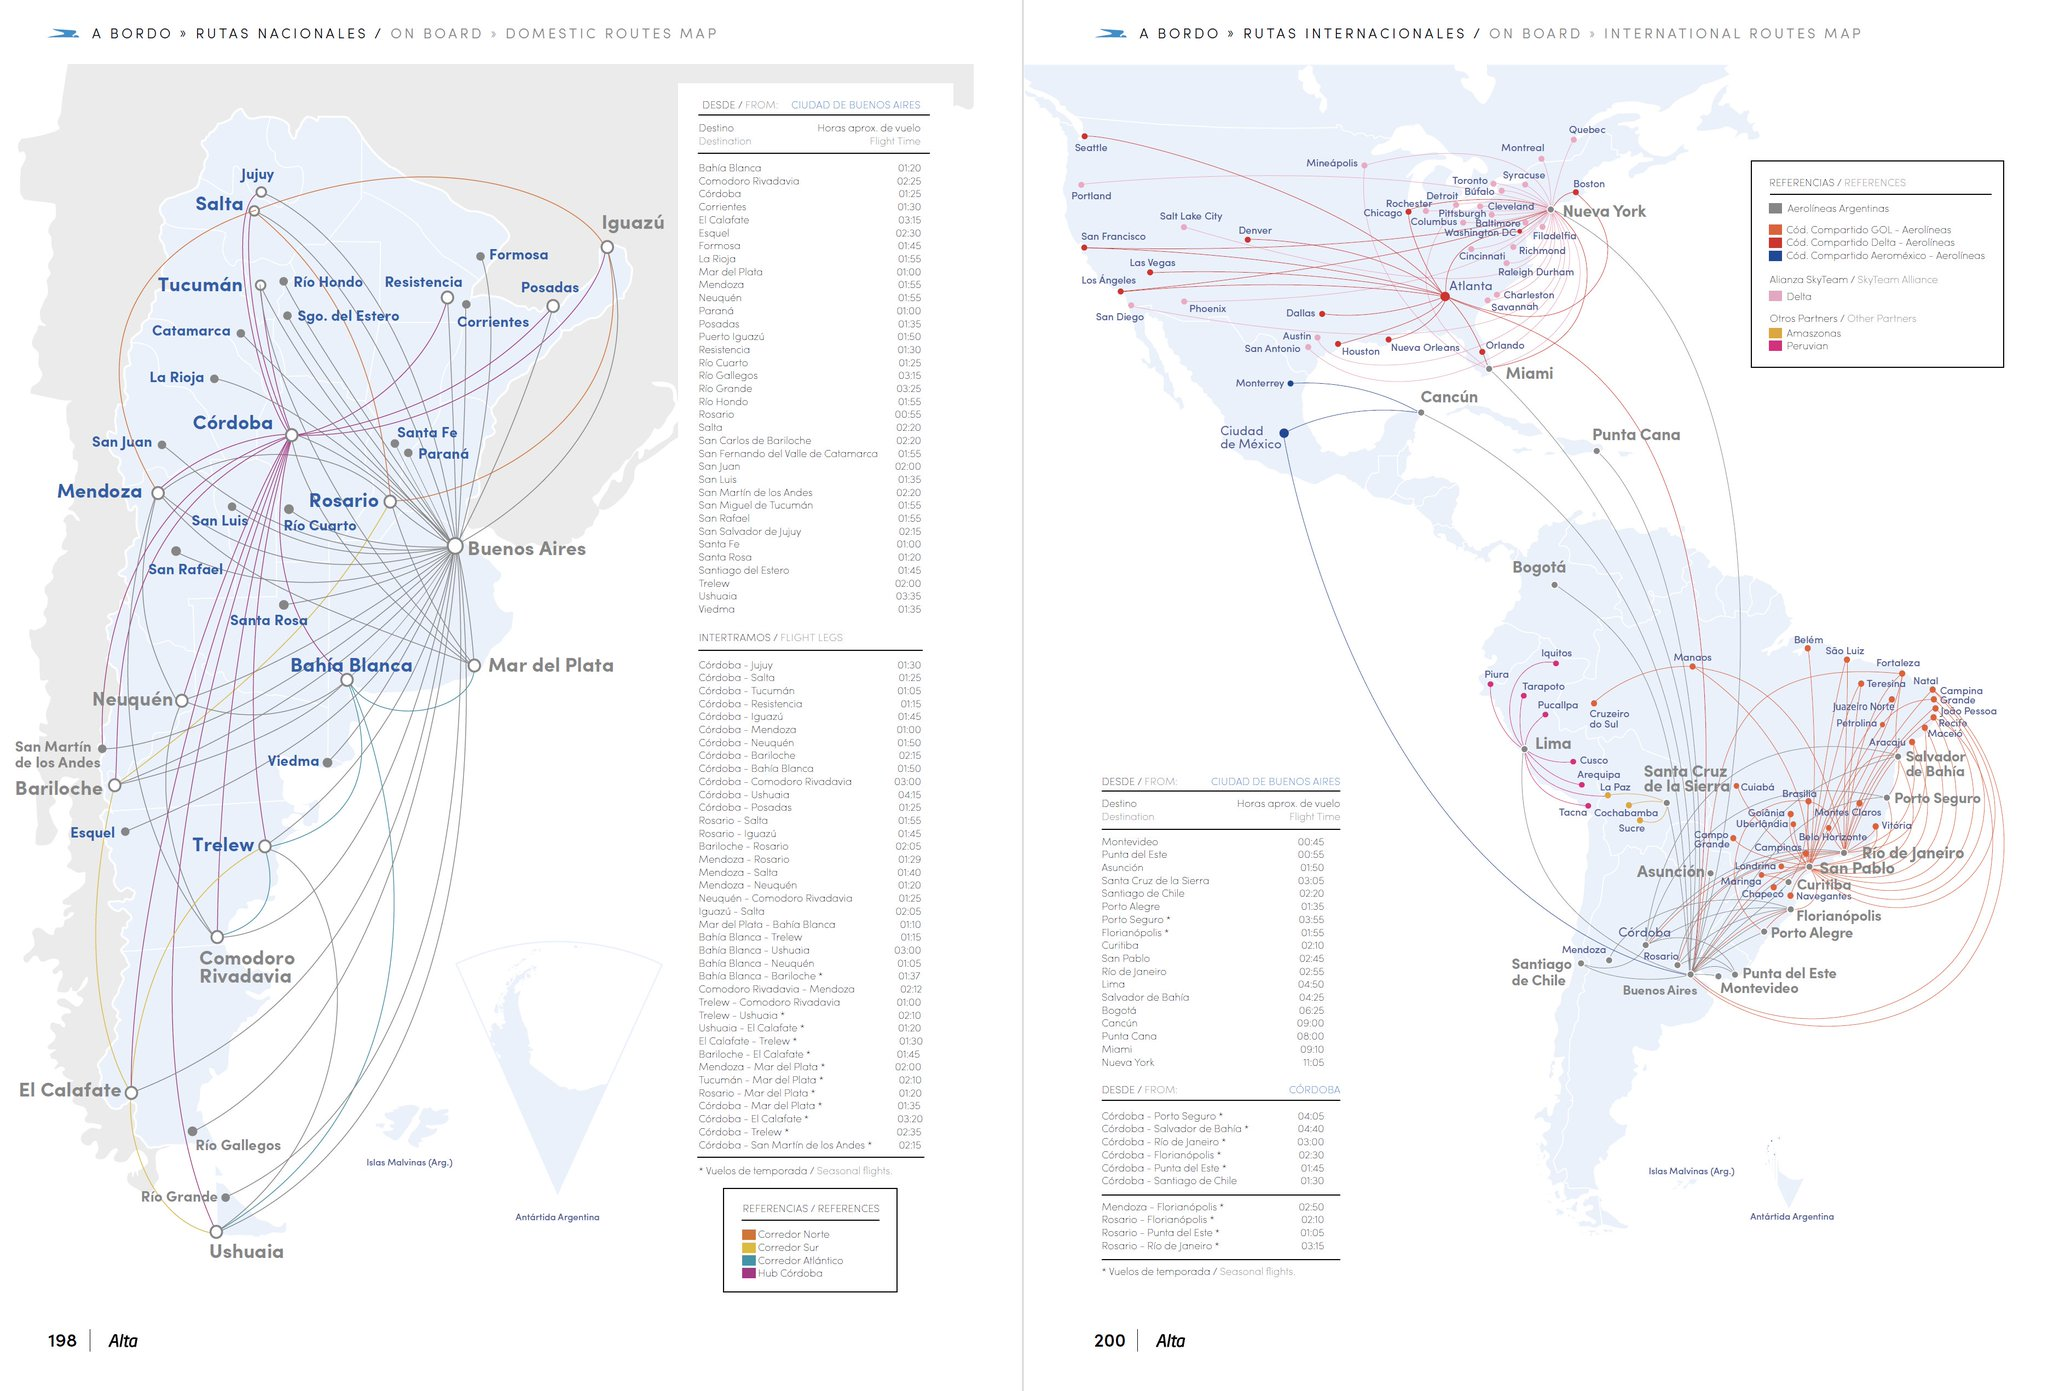 aerolineas argentinas route map Airlineroute On Twitter Aerolineas Argentinas Revamped Its aerolineas argentinas route map